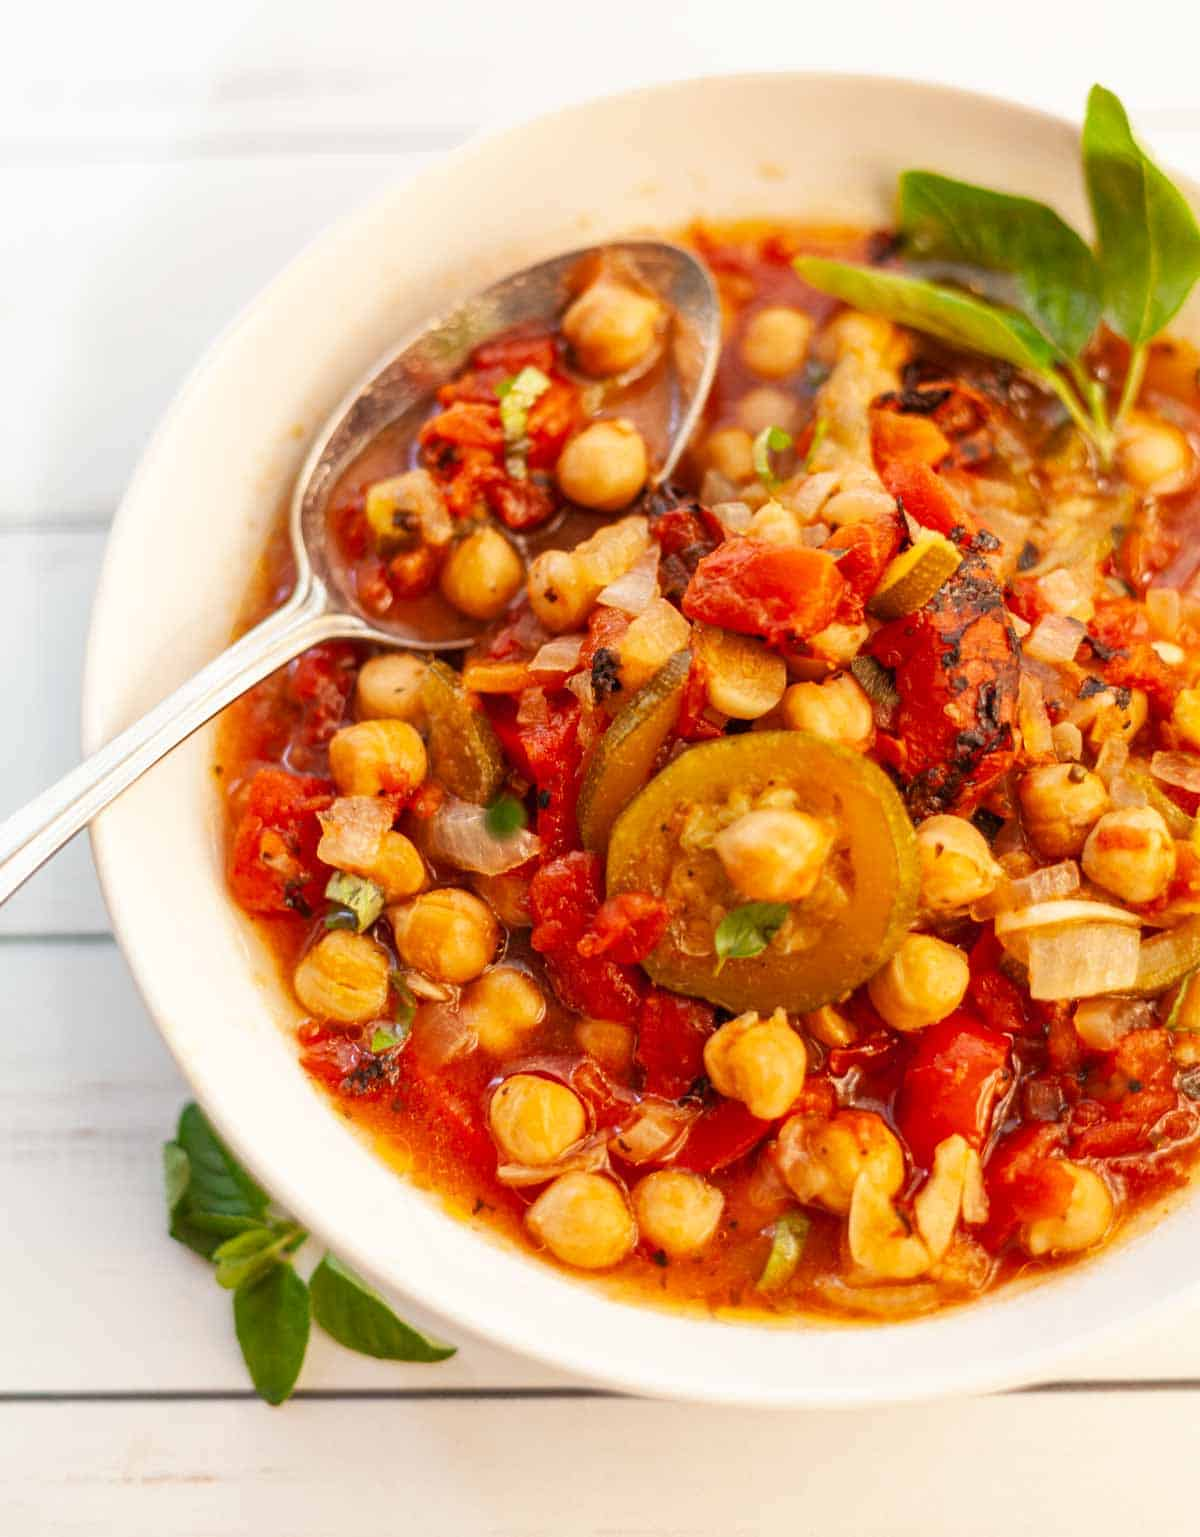 bowl of vegetarian stew with chickpeas